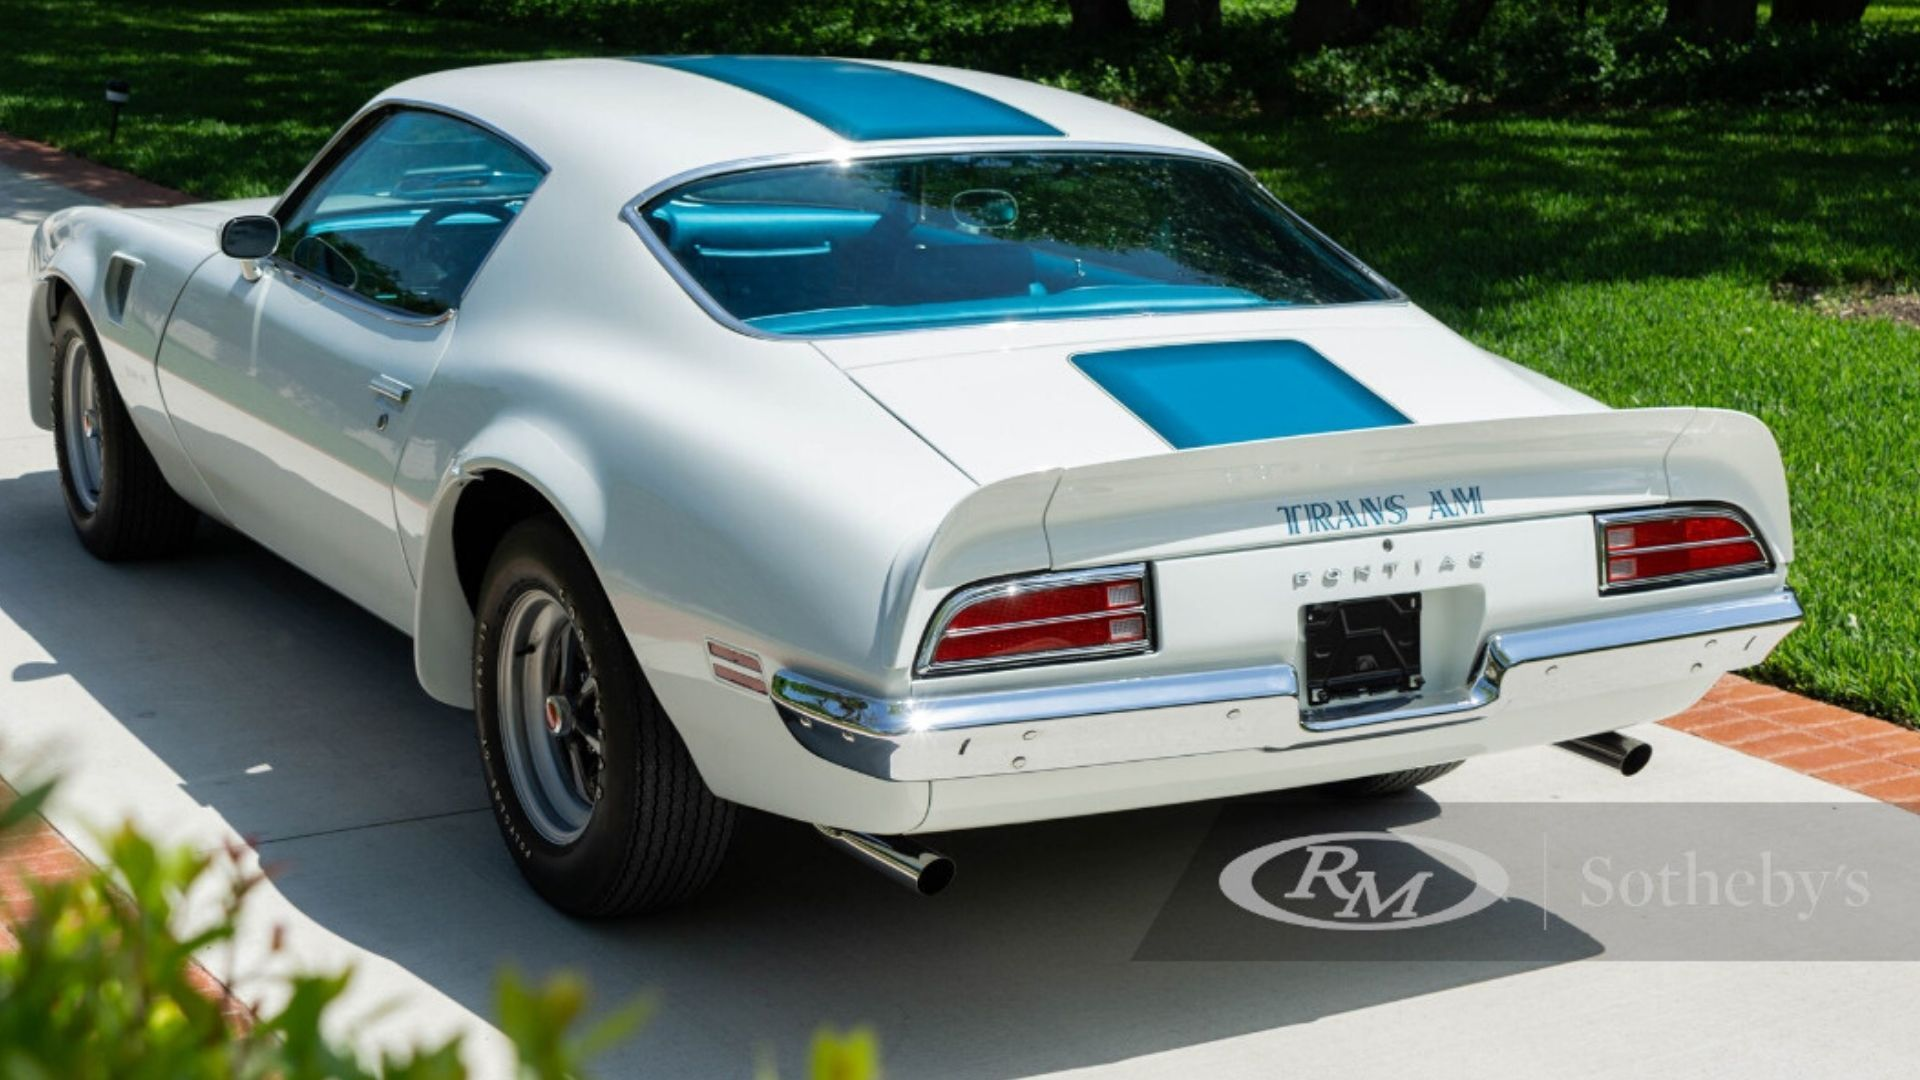 Numbers-Matching 1970 Pontiac Trans Am Heads To Auction Block